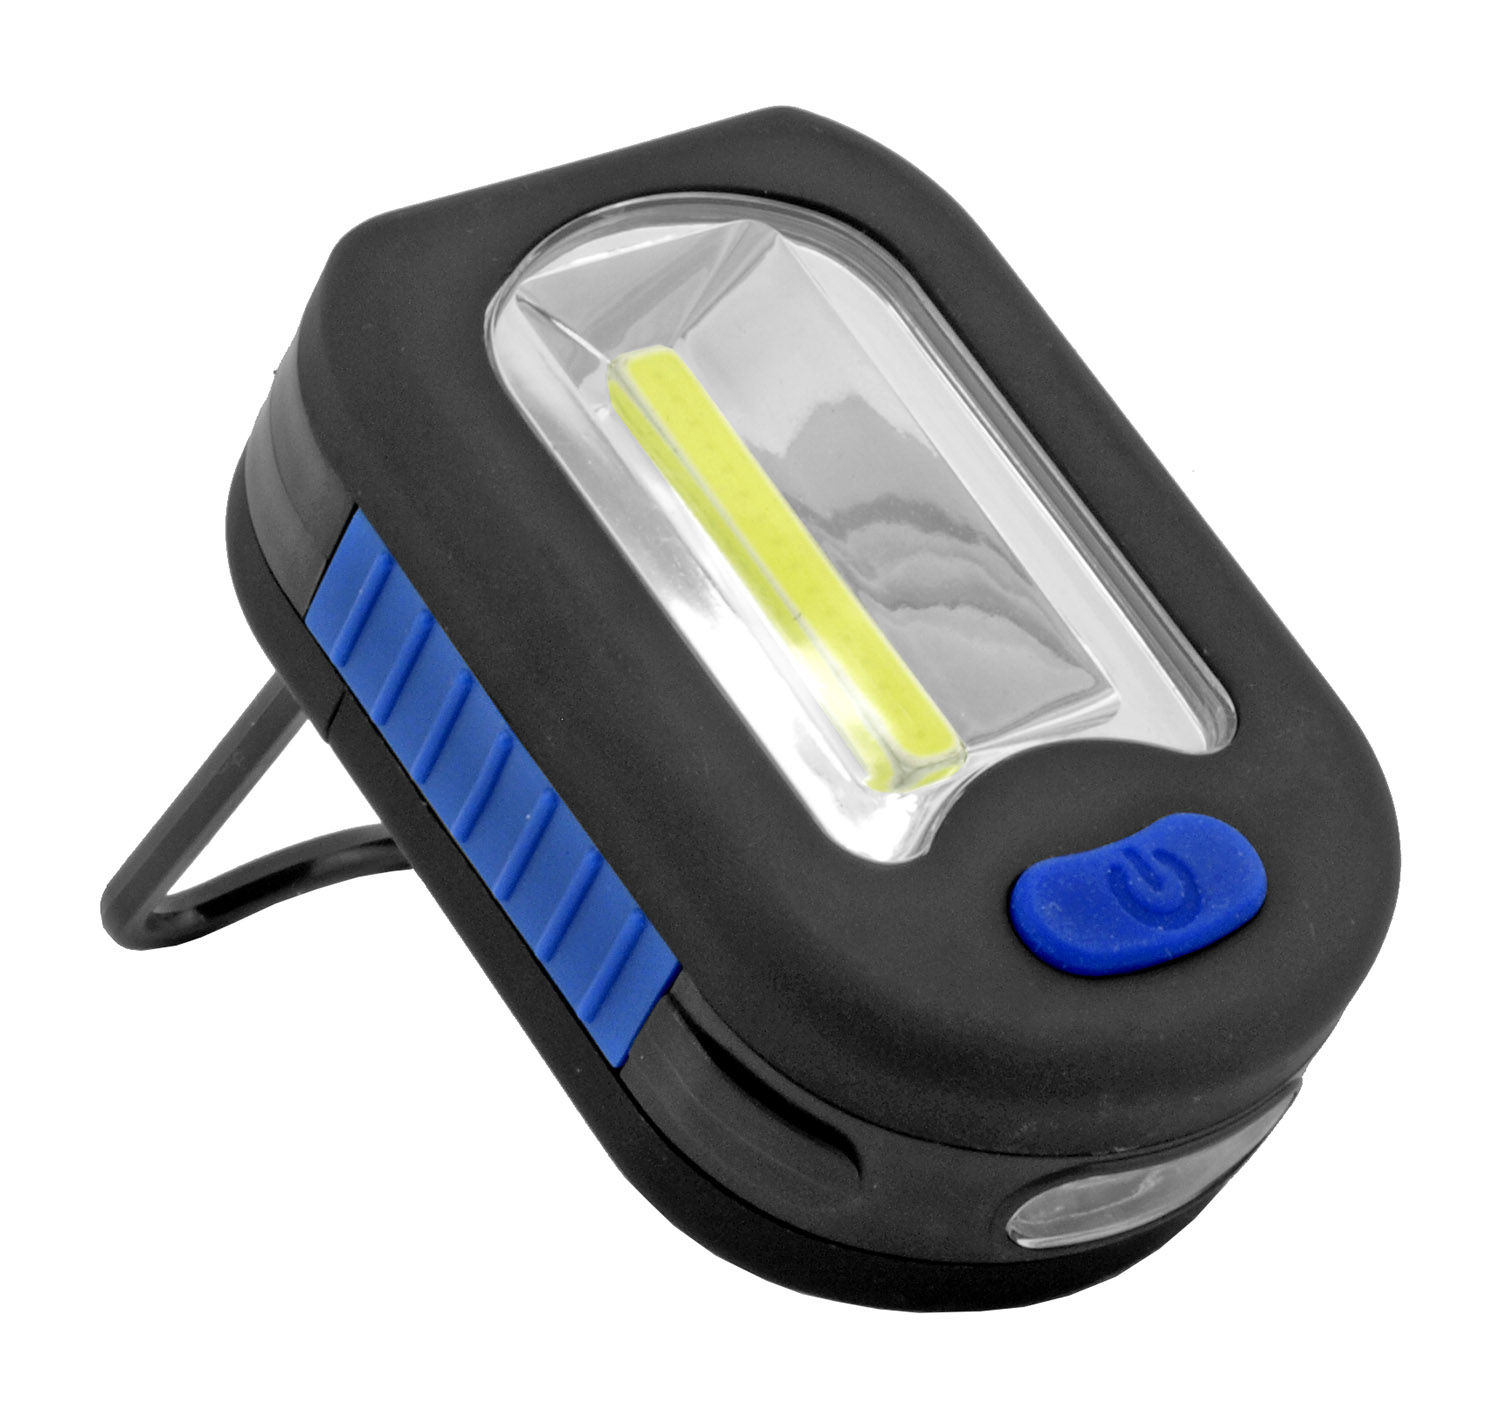 COB LED Hanging Work Light with Folding Stand - Diamond Visions